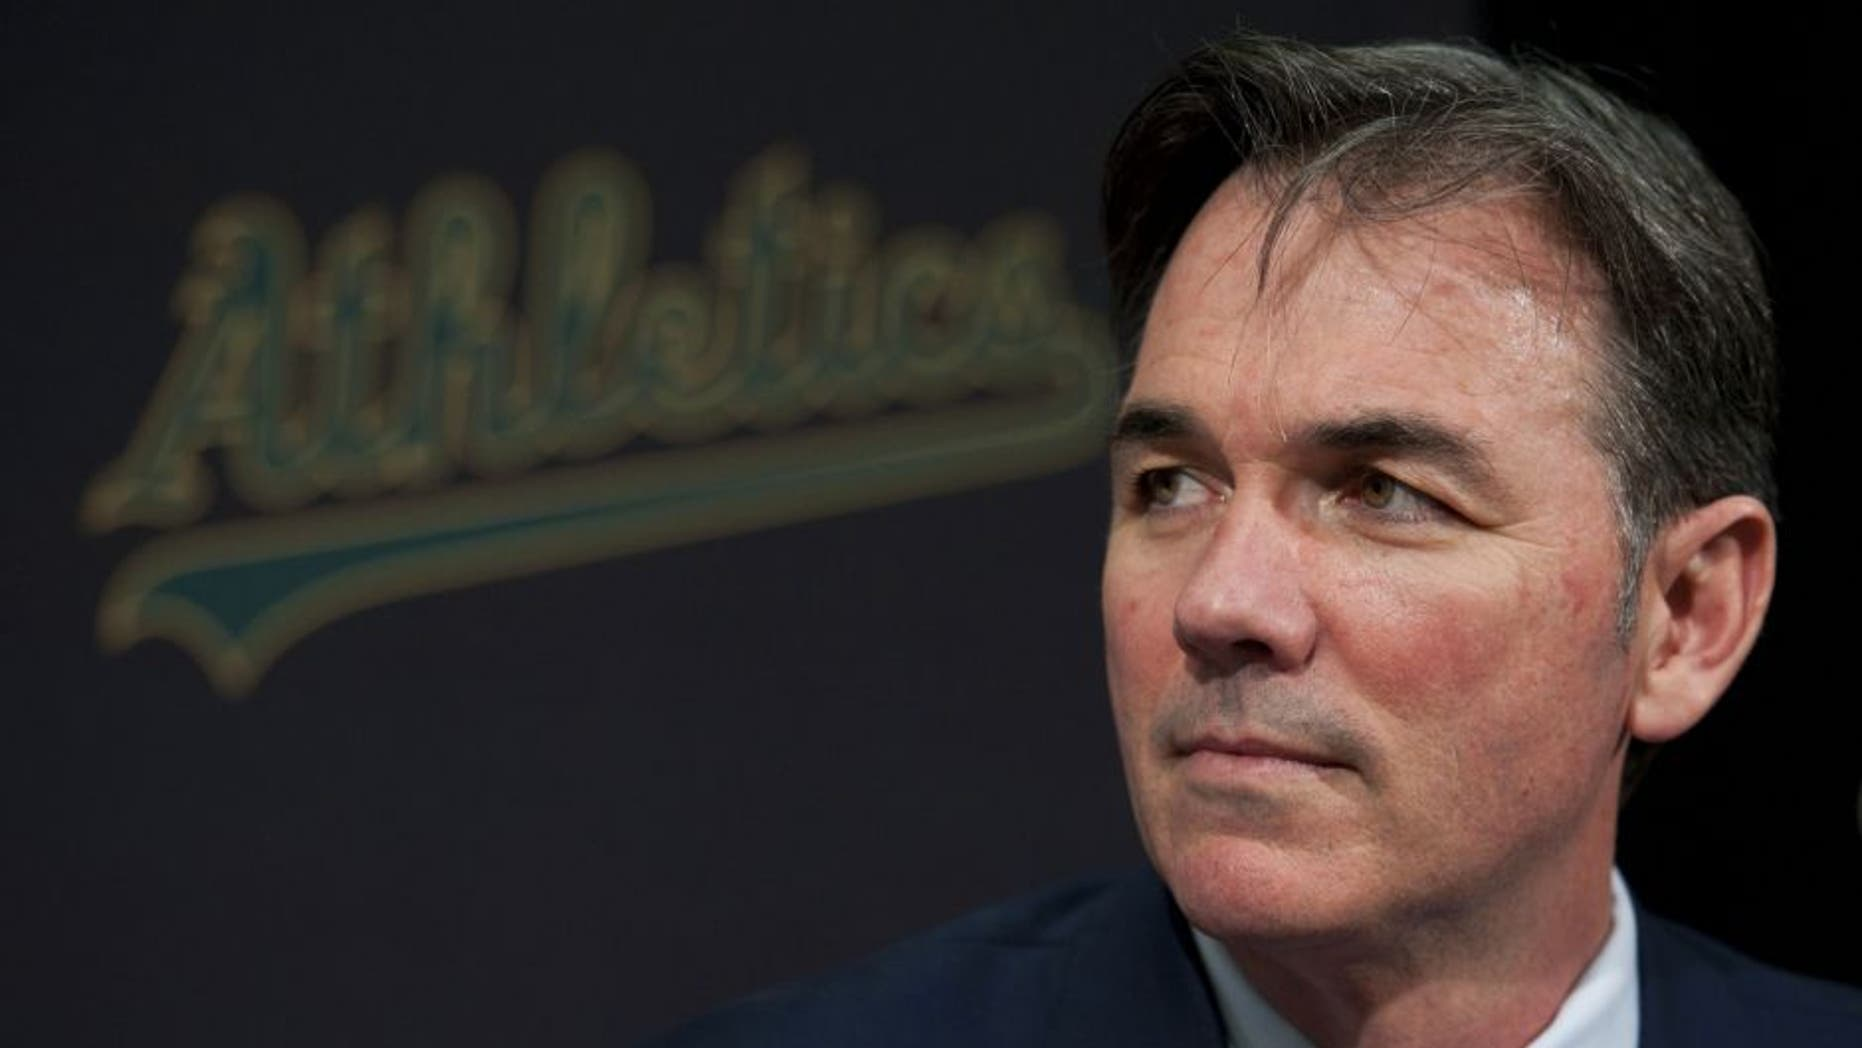 December 14, 2010; Oakland, CA, USA; Oakland Athletics general manager Billy Beane addresses the media during a press conference following designated hitter Hideki Matsui (not pictured) signing with the Athletics at Oakland-Alameda County Coliseum. Mandatory Credit: Kyle Terada-USA TODAY Sports